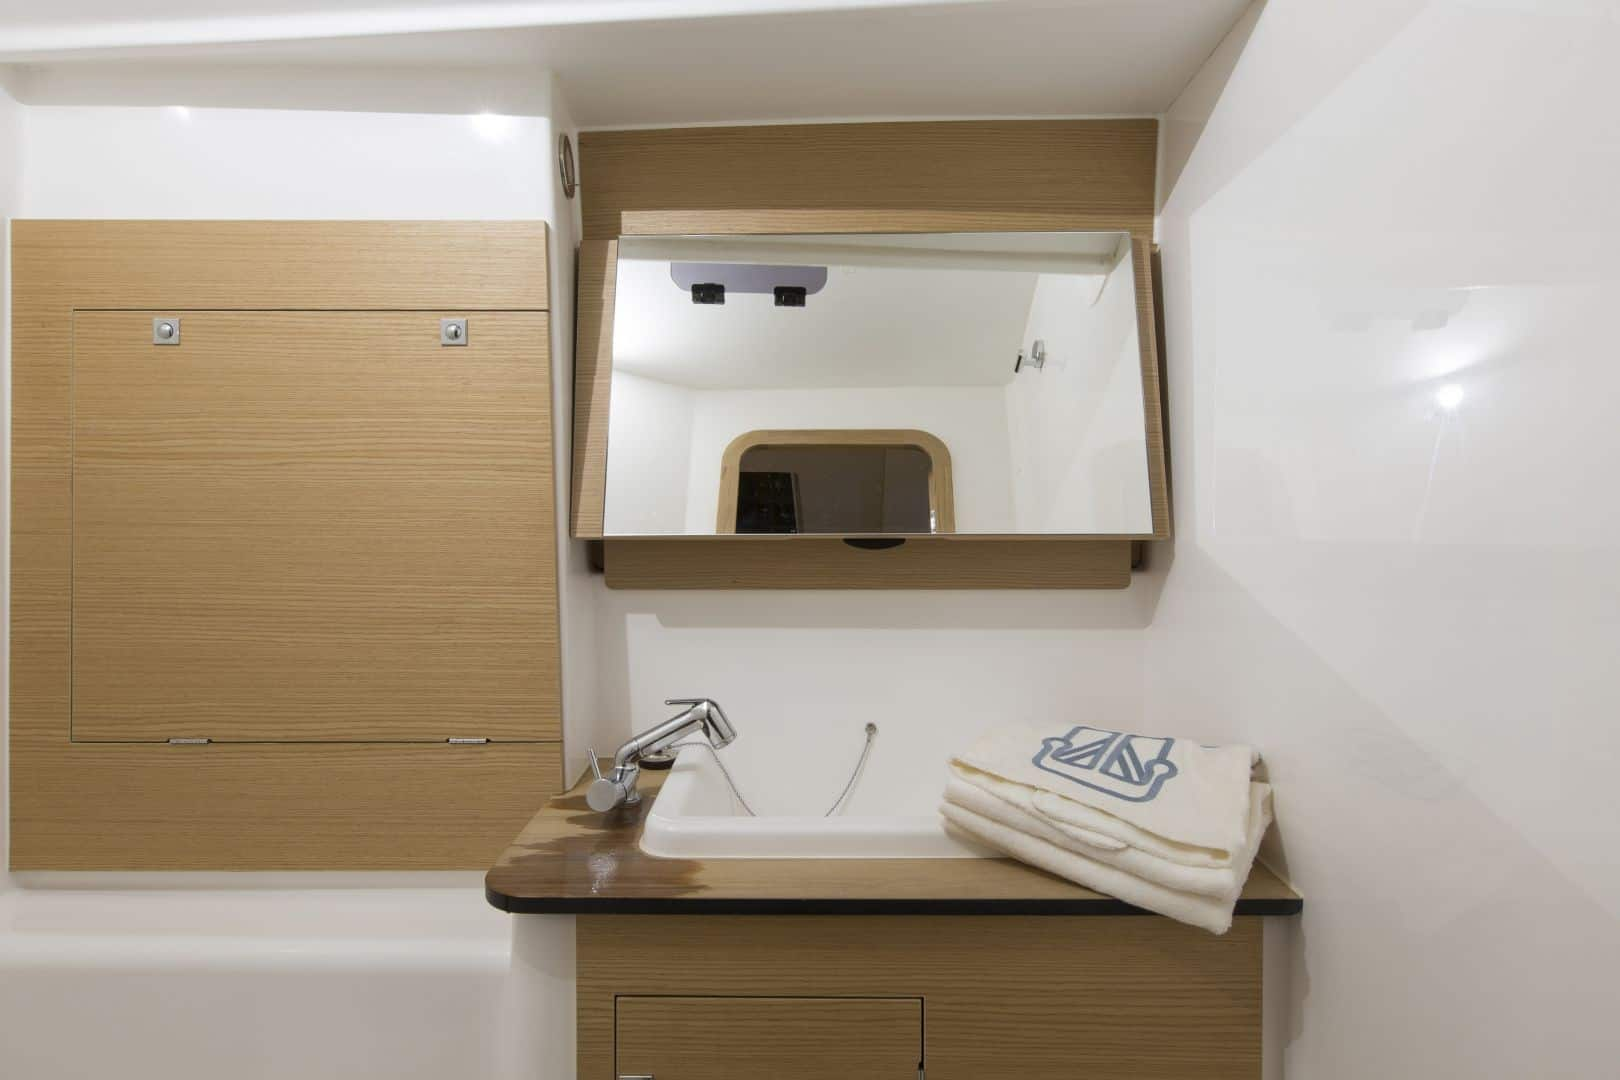 Head of the Dufour GL 460 with slik looking sink and wooden interior